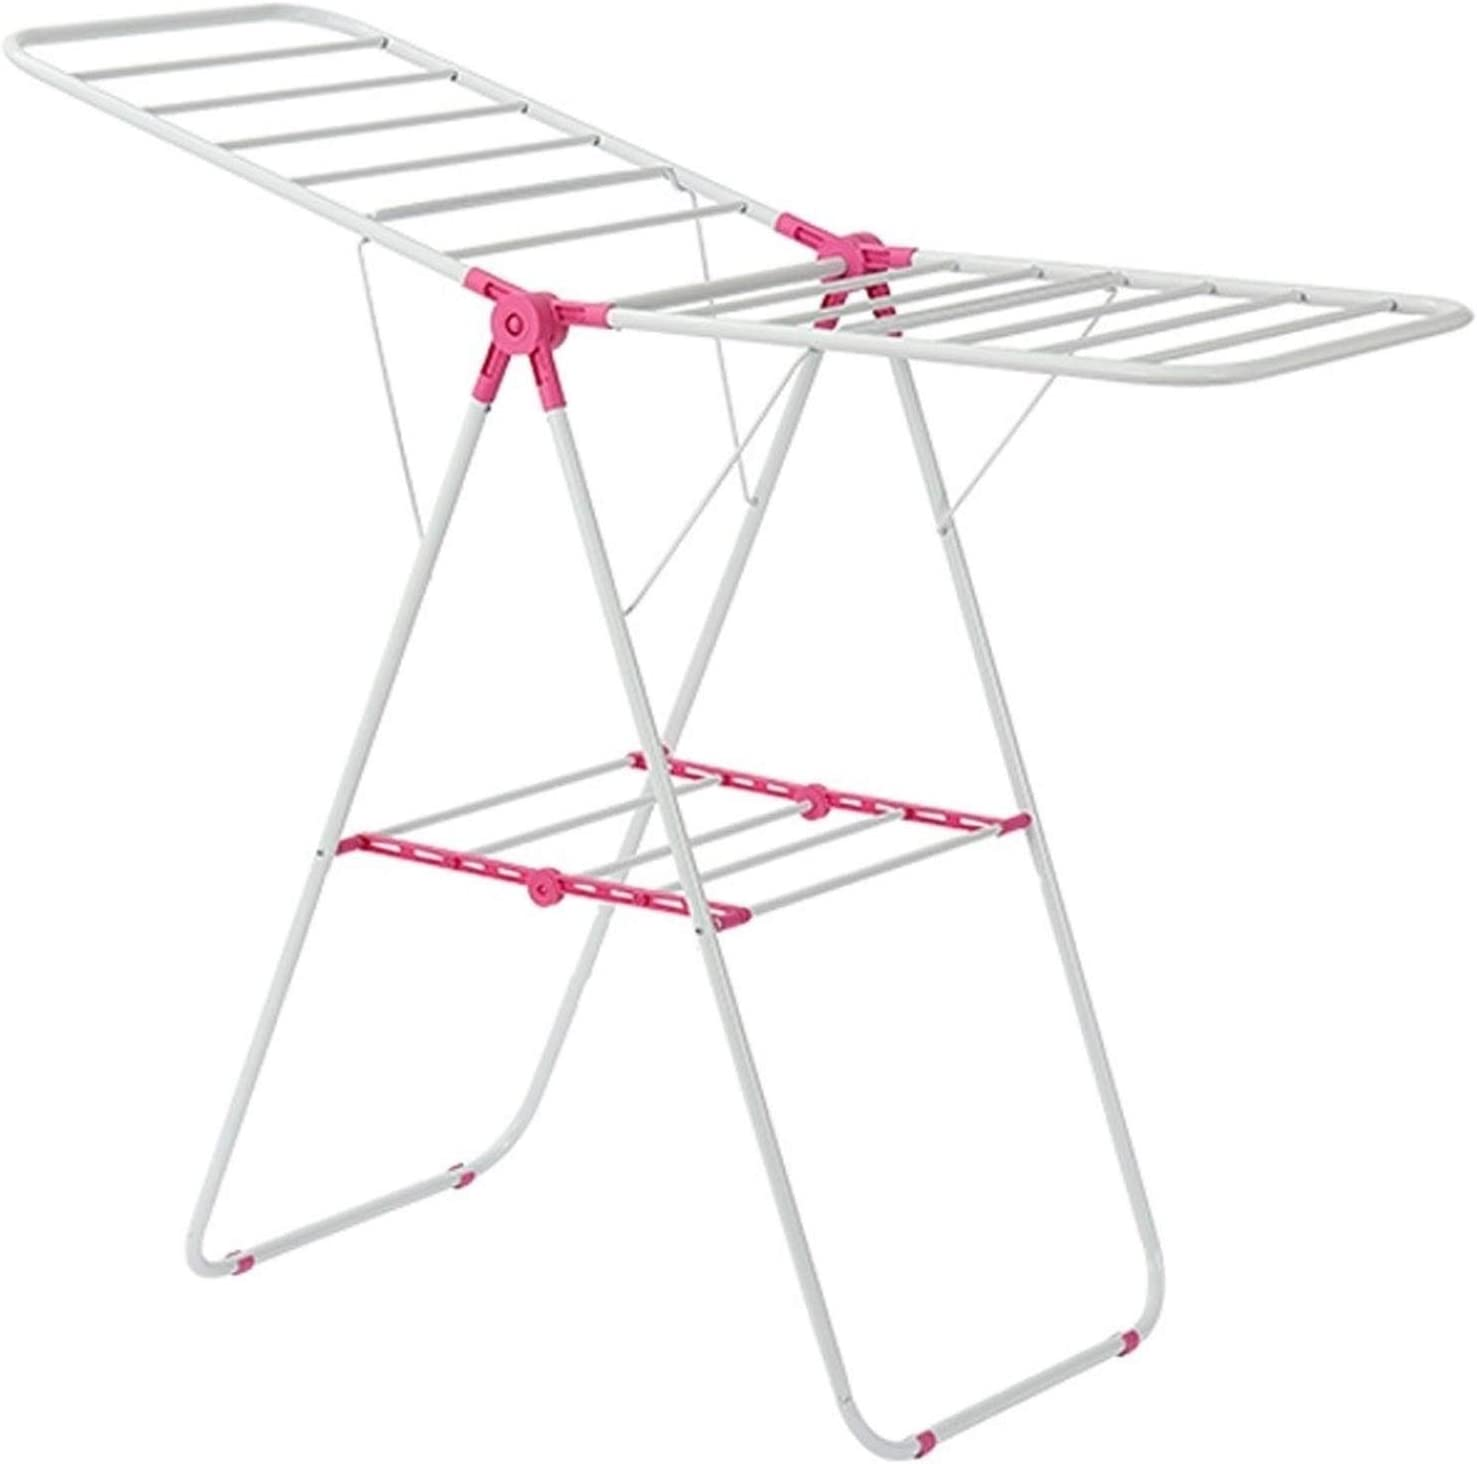 Max 70% OFF Clothes Drying Rack for Folding San Diego Mall Laundry Ra Winged